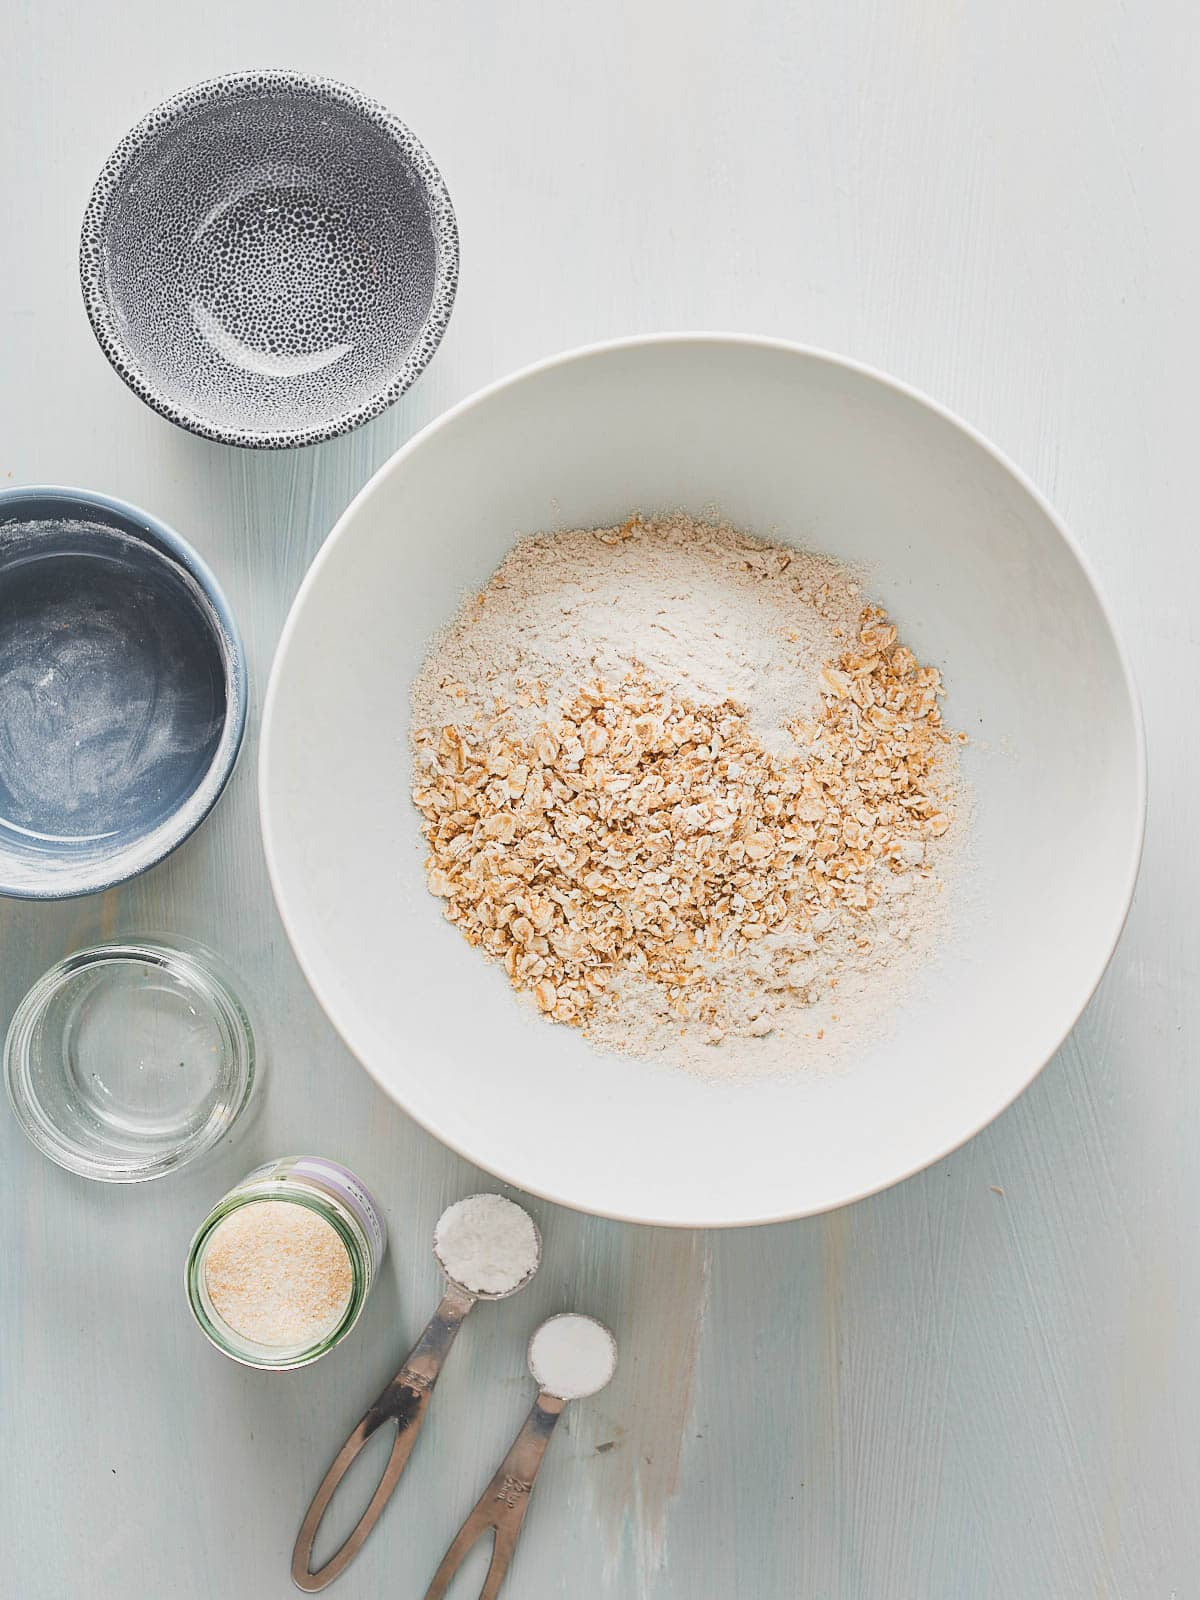 Buckwheat flour, oat flour and oats added to mixing bowl